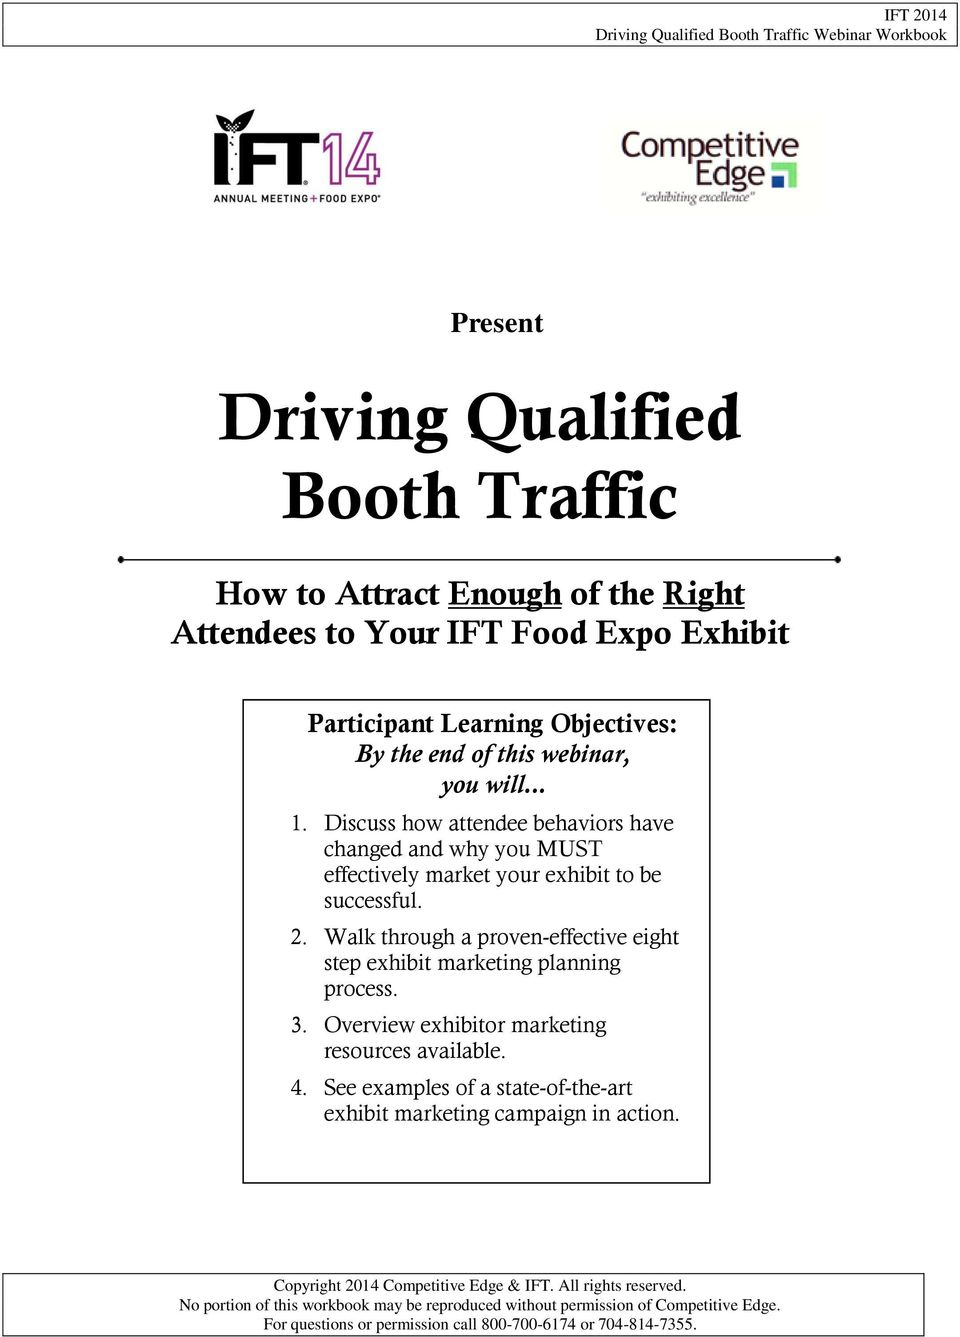 Driving Qualified Booth Traffic - PDF